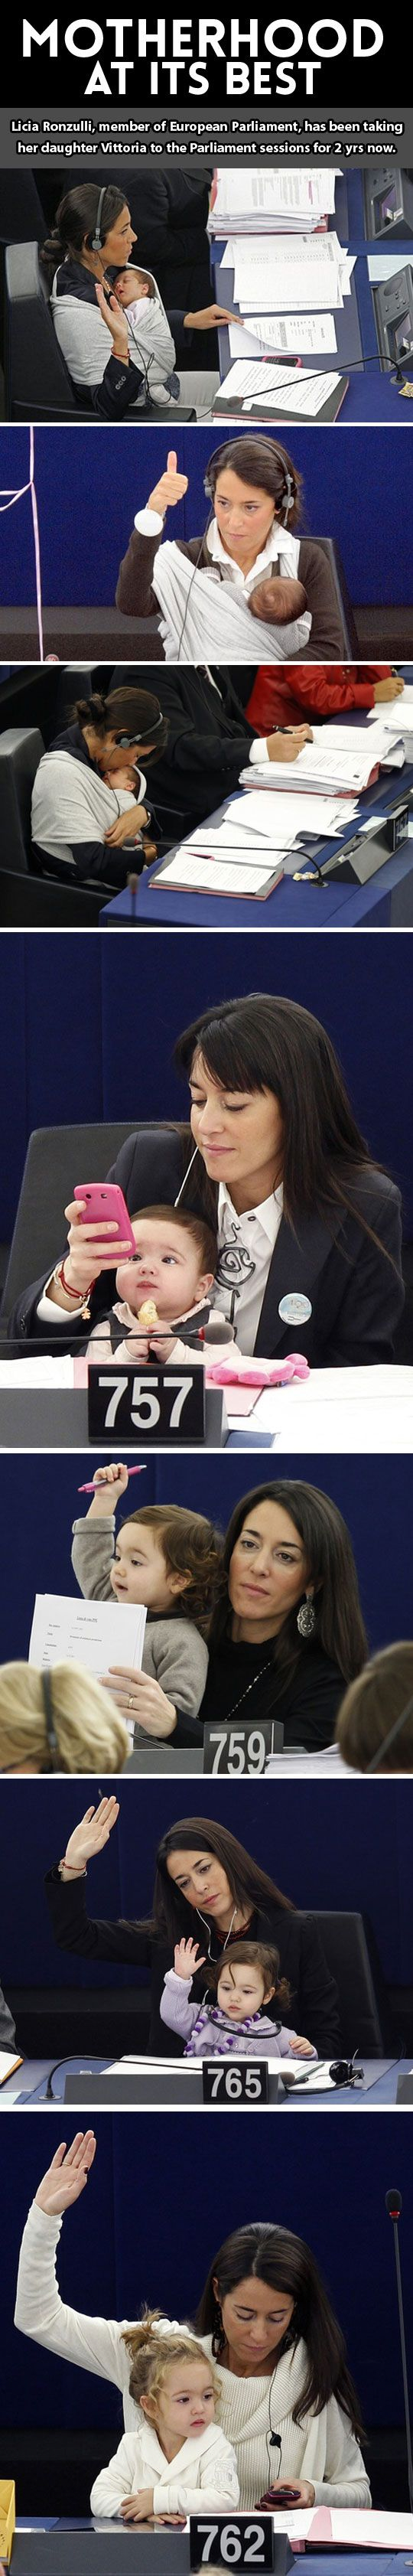 This mom is a member of European Parliament and has been bringing her daughter with her for 2 years... awesome